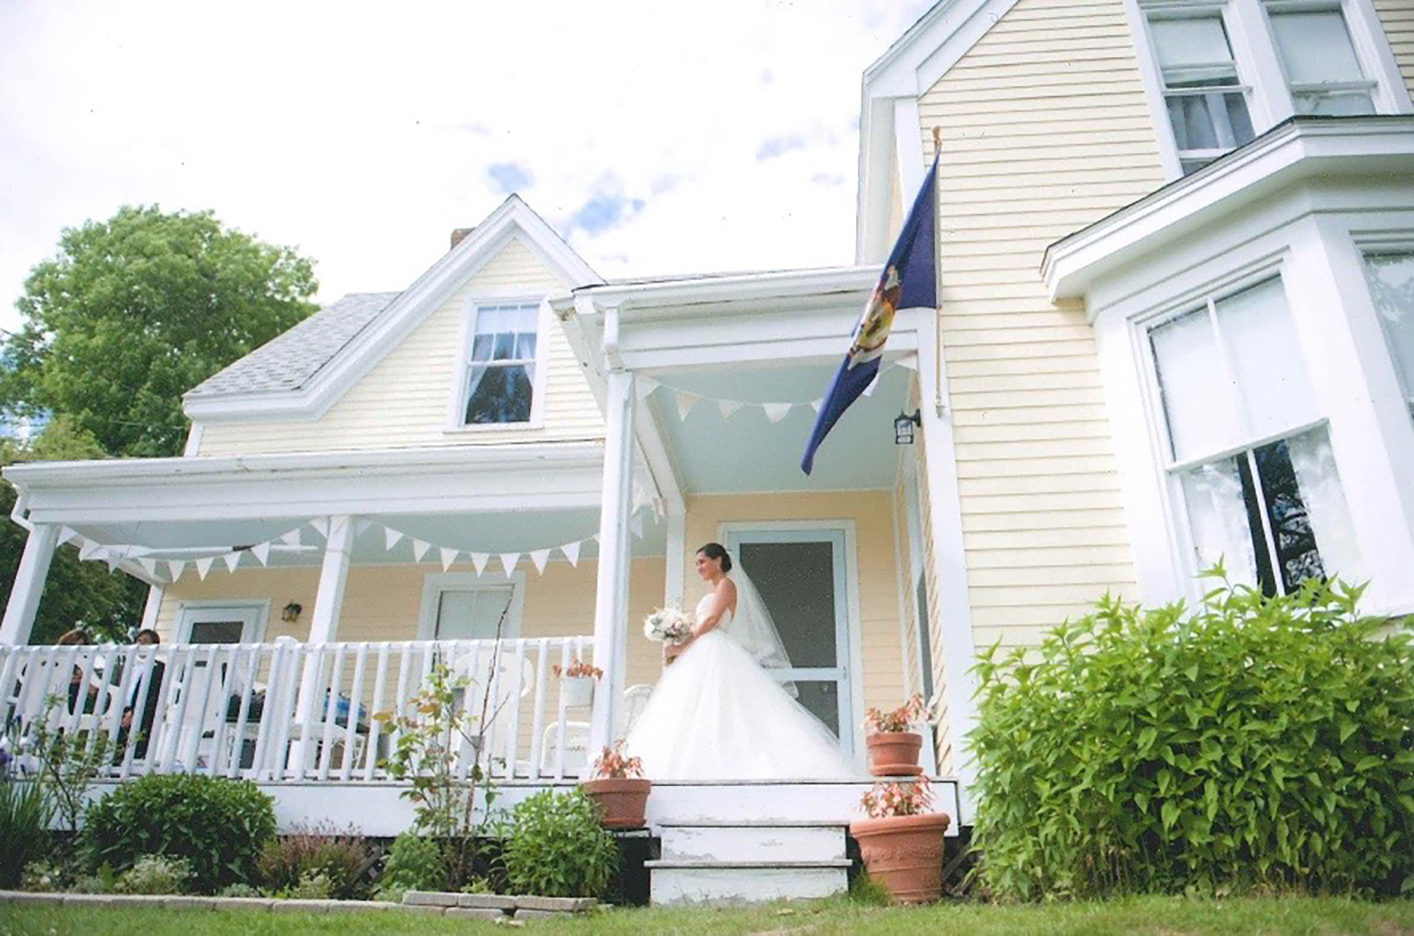 Anna, on her wedding day, at her home on North Haven